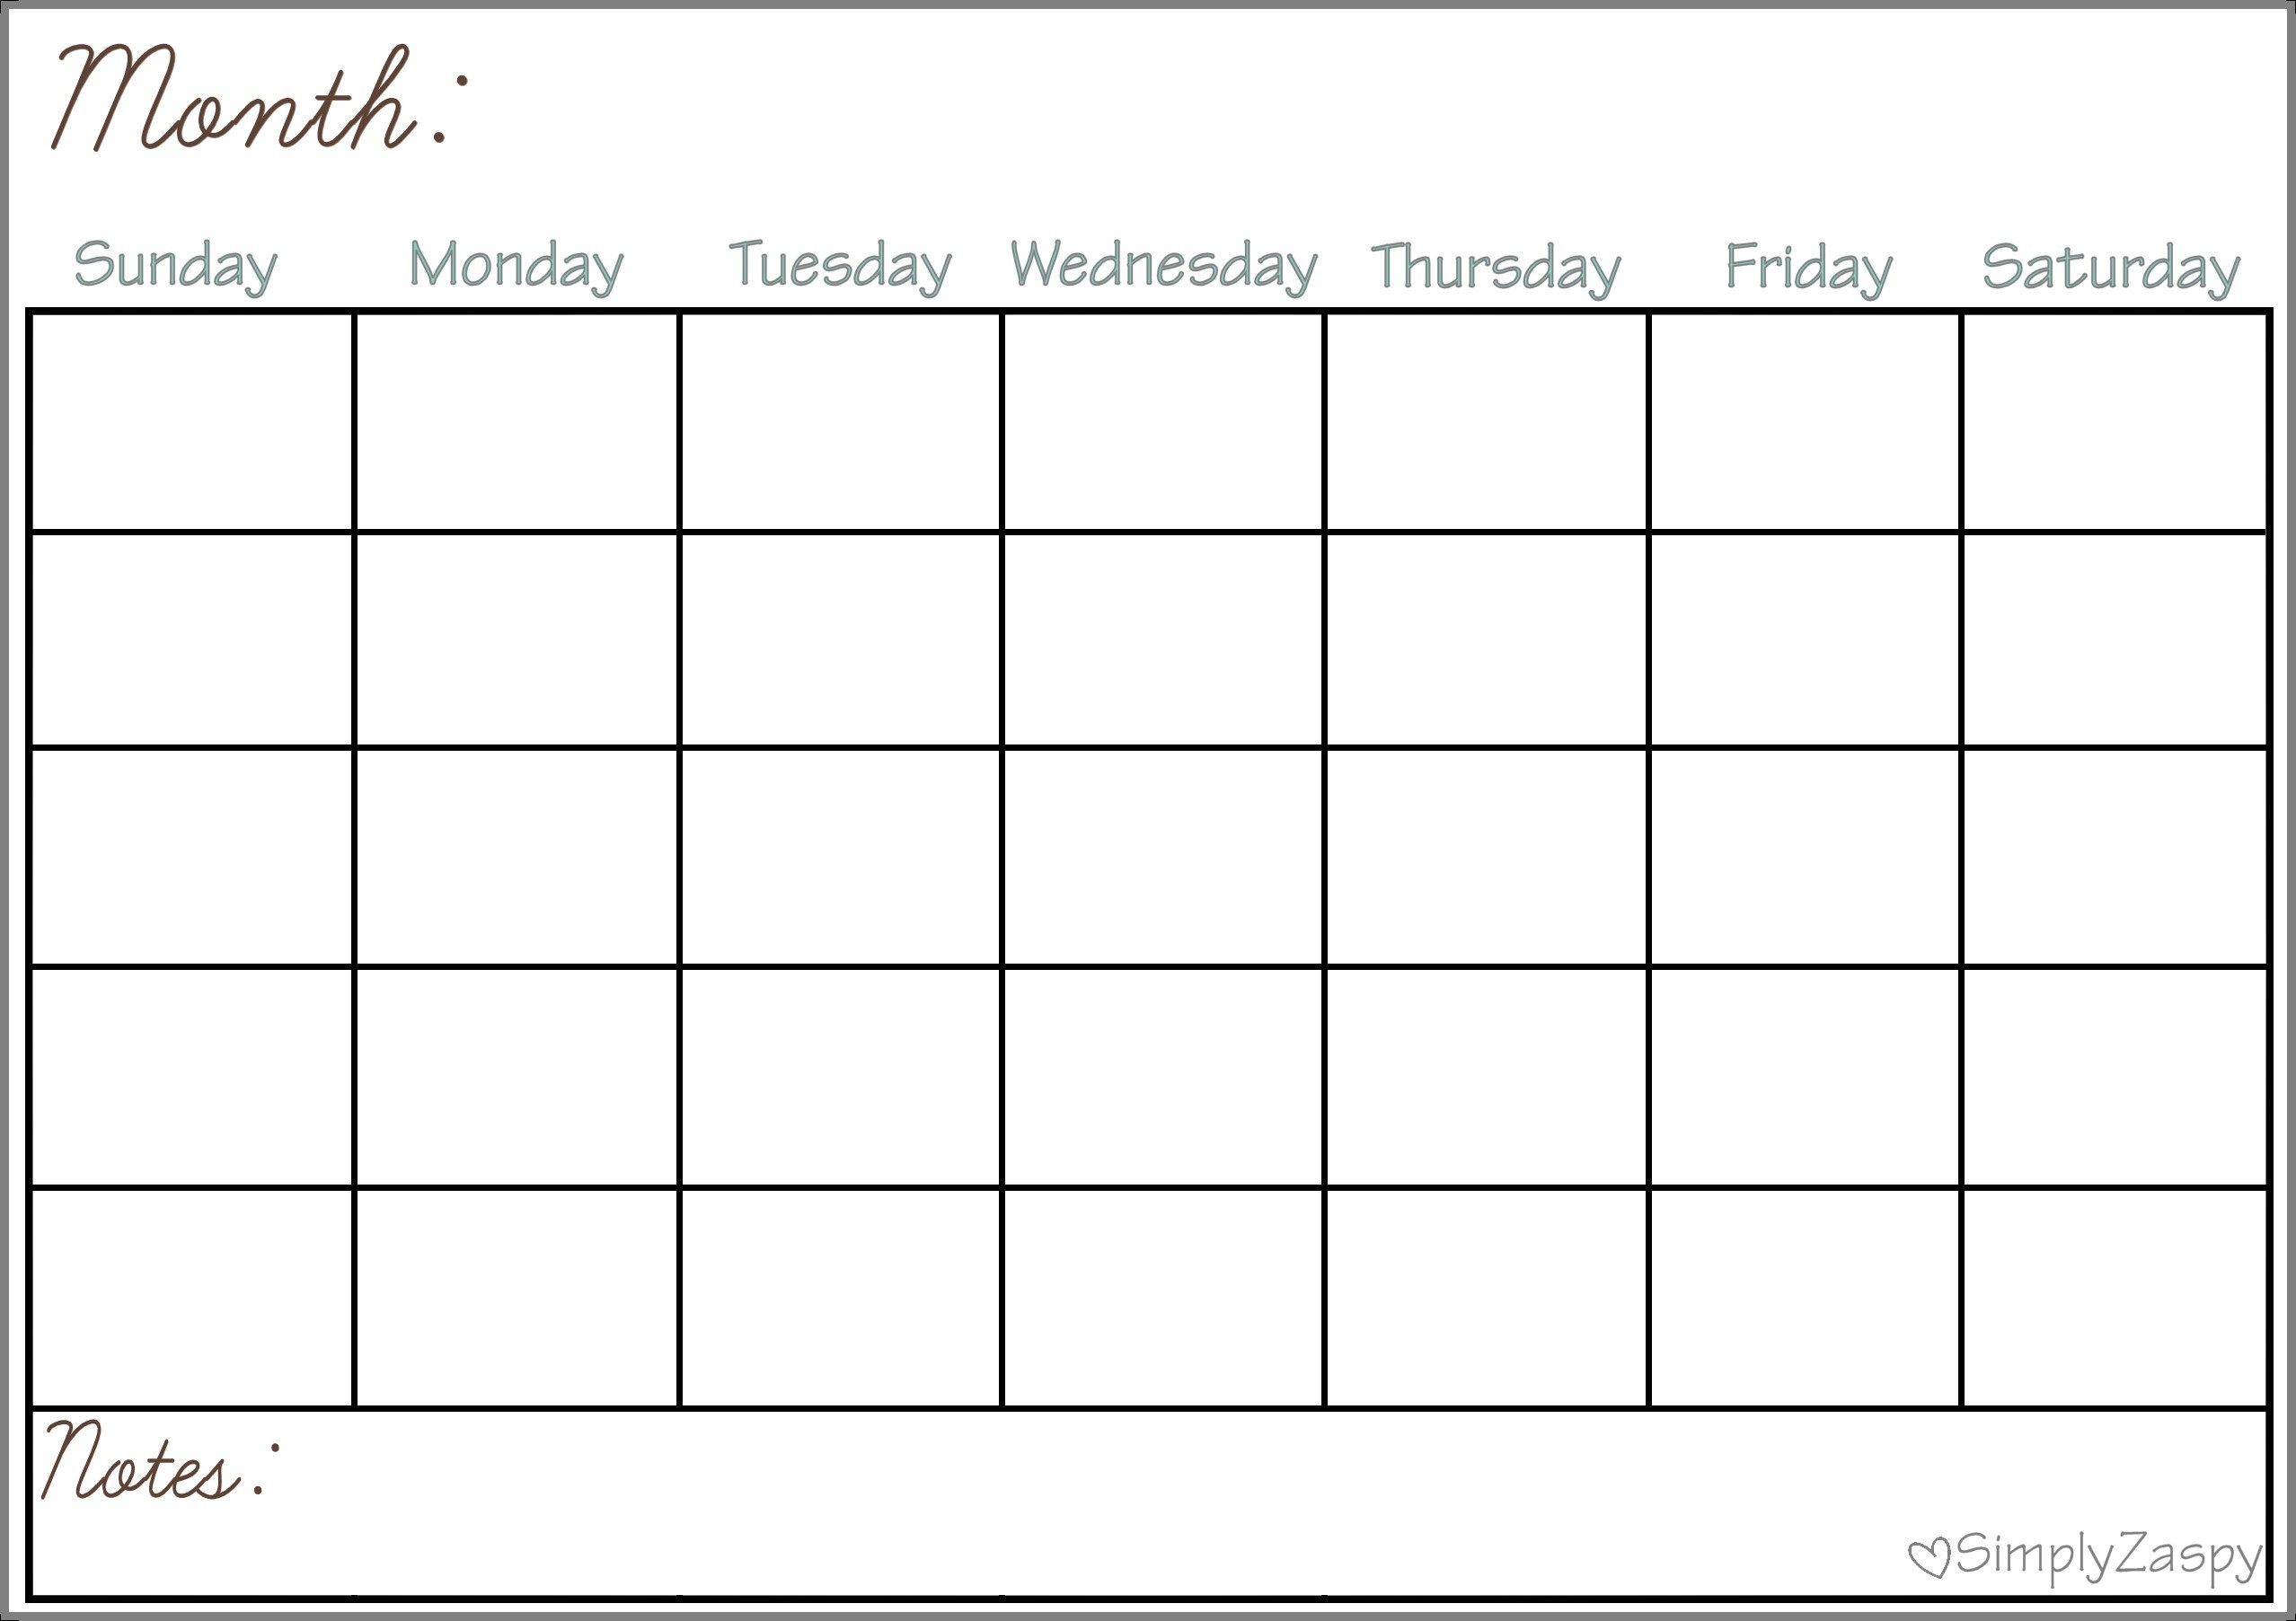 Calendar Blank Grid Printable For Free Of Charge - Calendaro